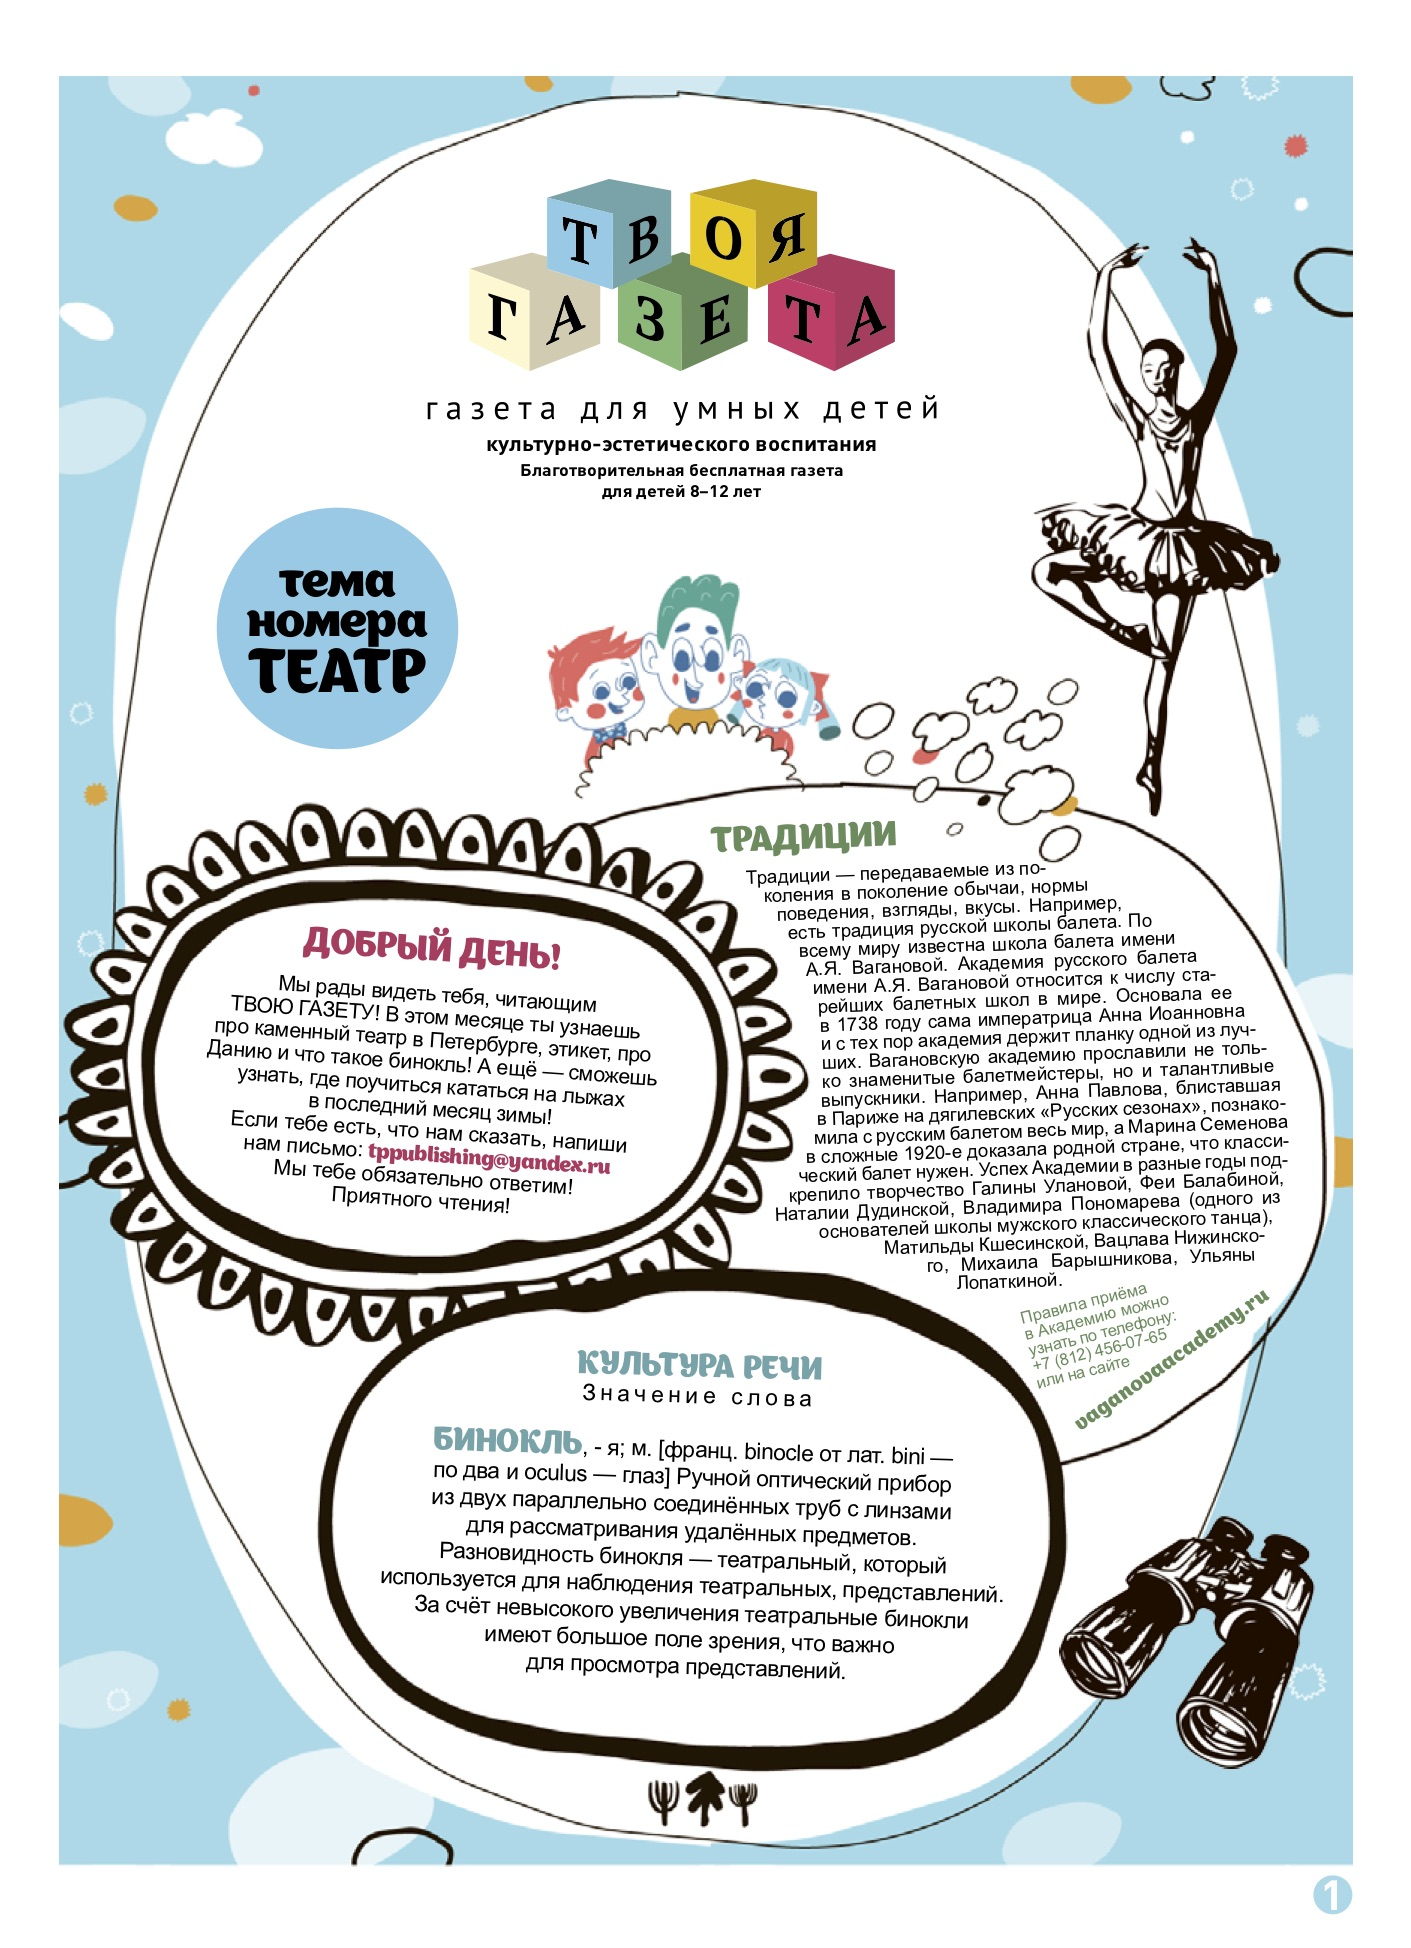 Free Children educational newspaper TVOYA GAZETA